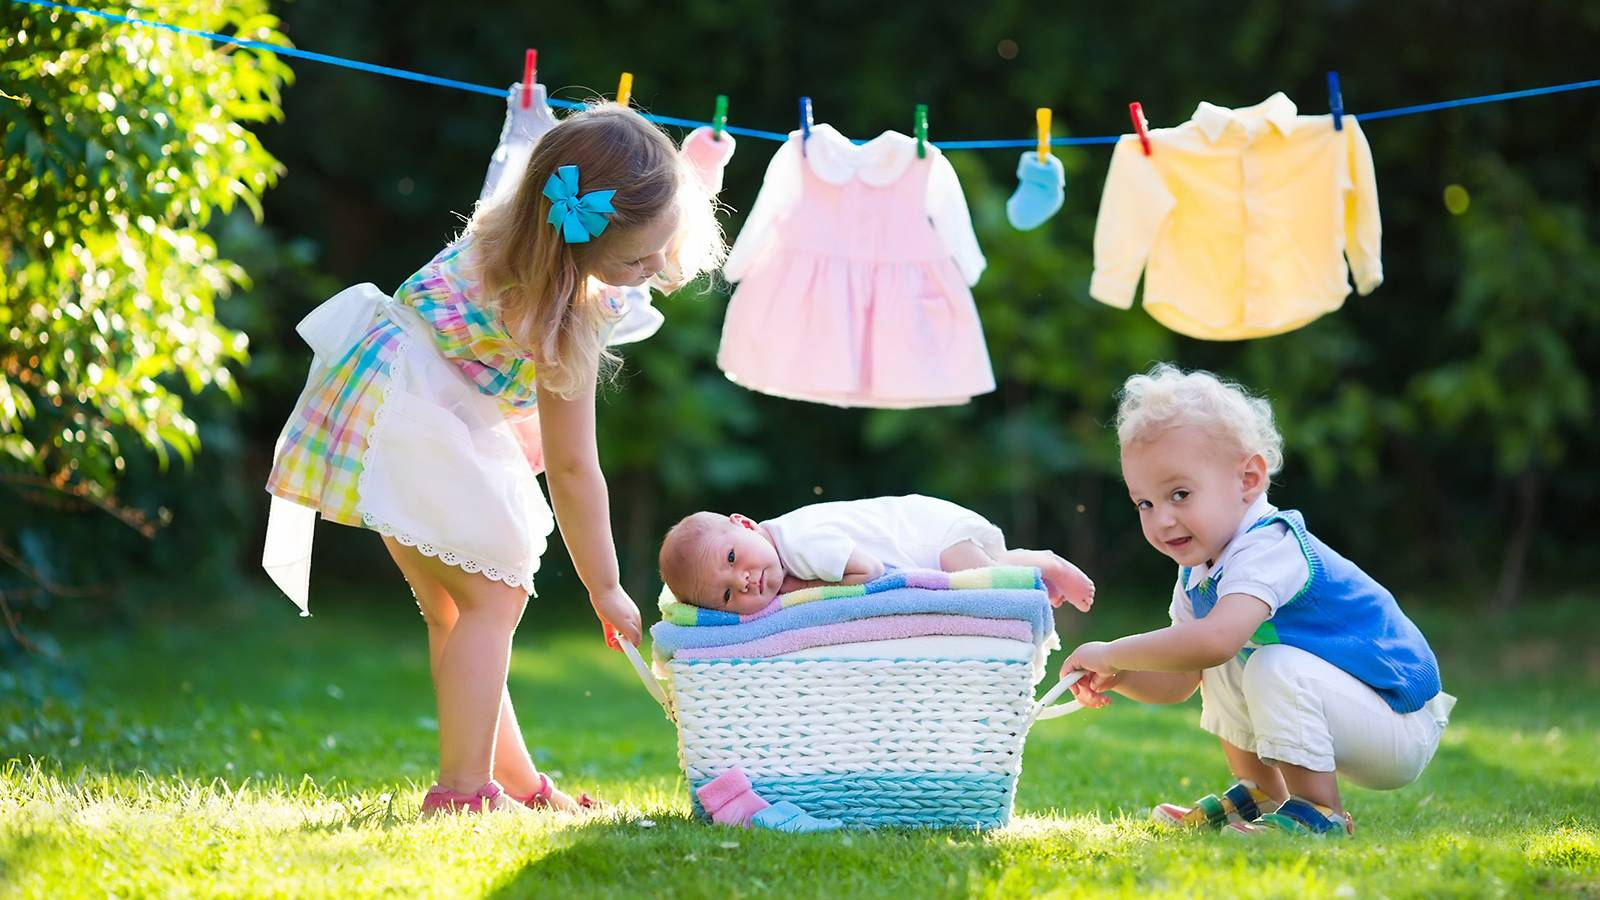 BUYER'S GUIDE 7 best laundry detergents for baby